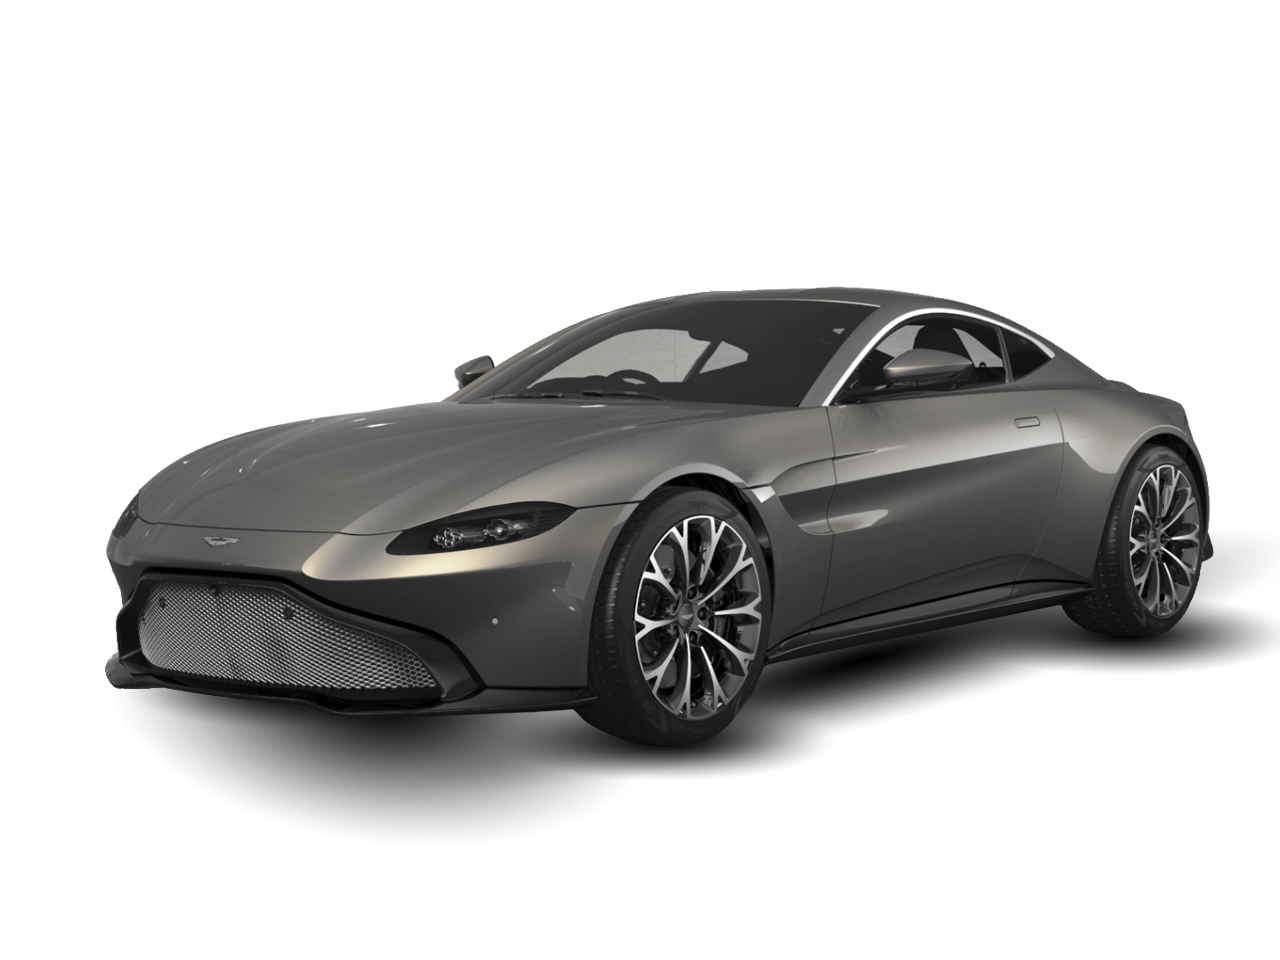 2019 aston martin for sale in los angeles